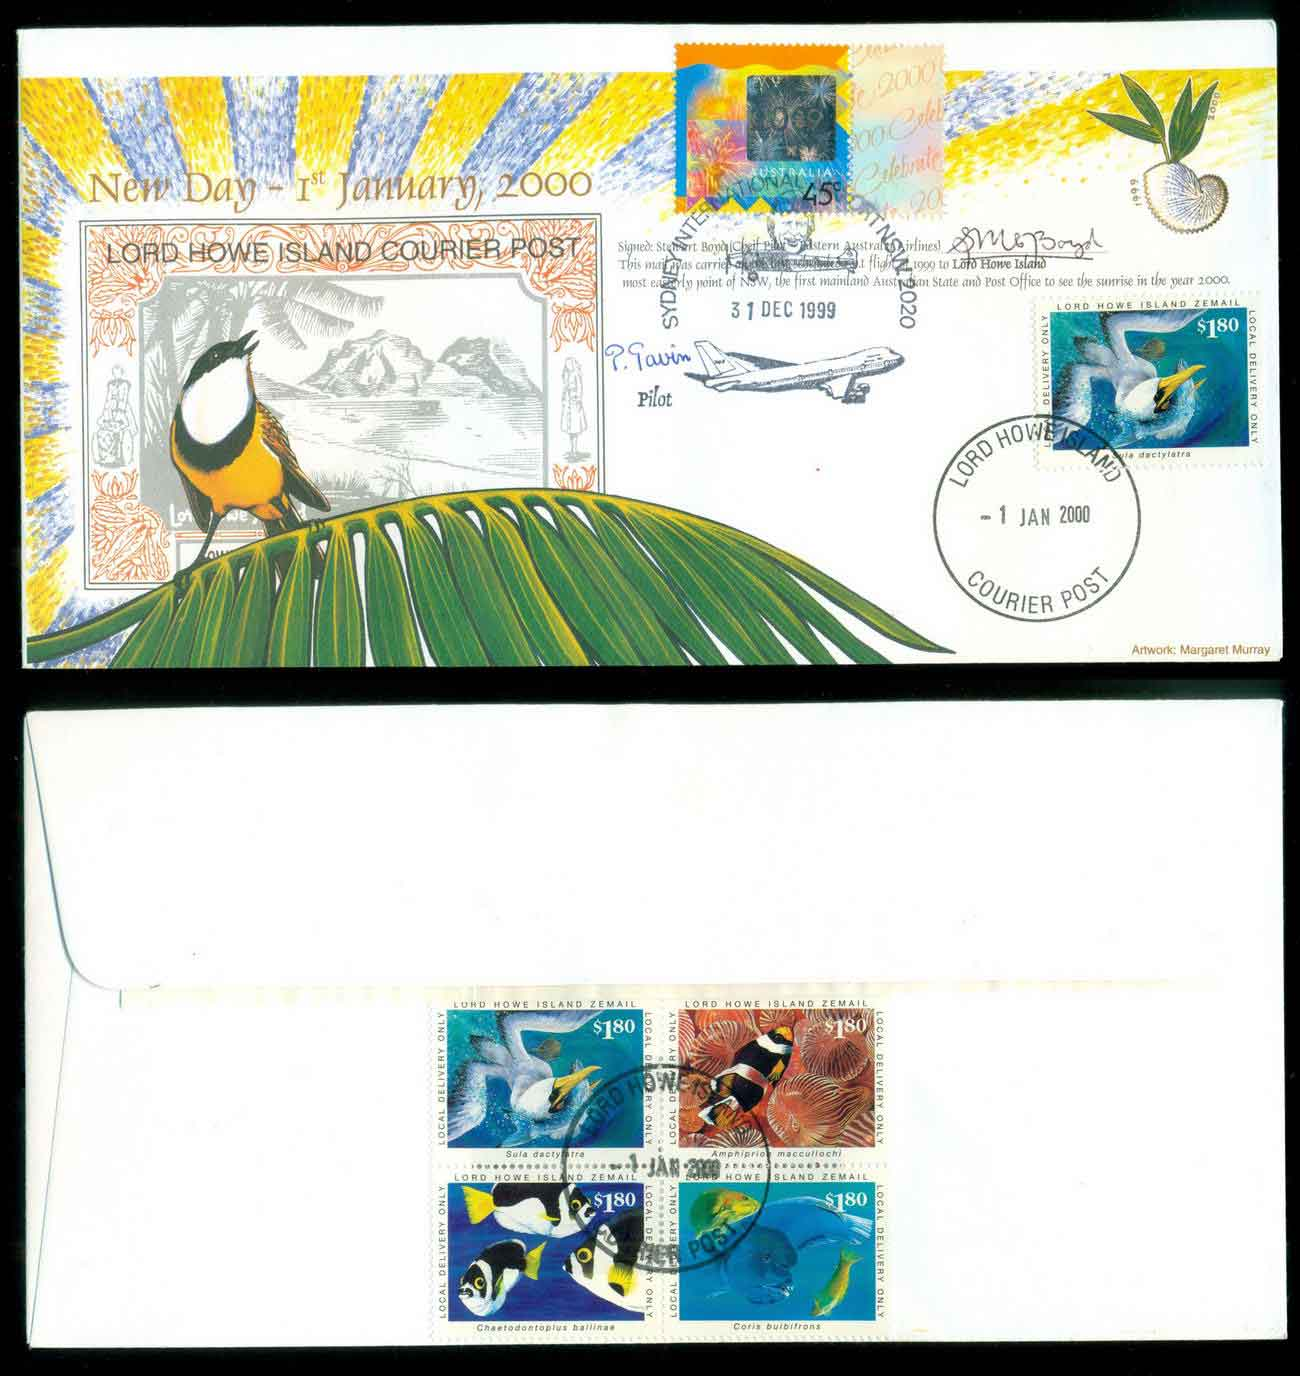 Lord Howe Island 2000 New years day, Pilot signed FDC lot51538